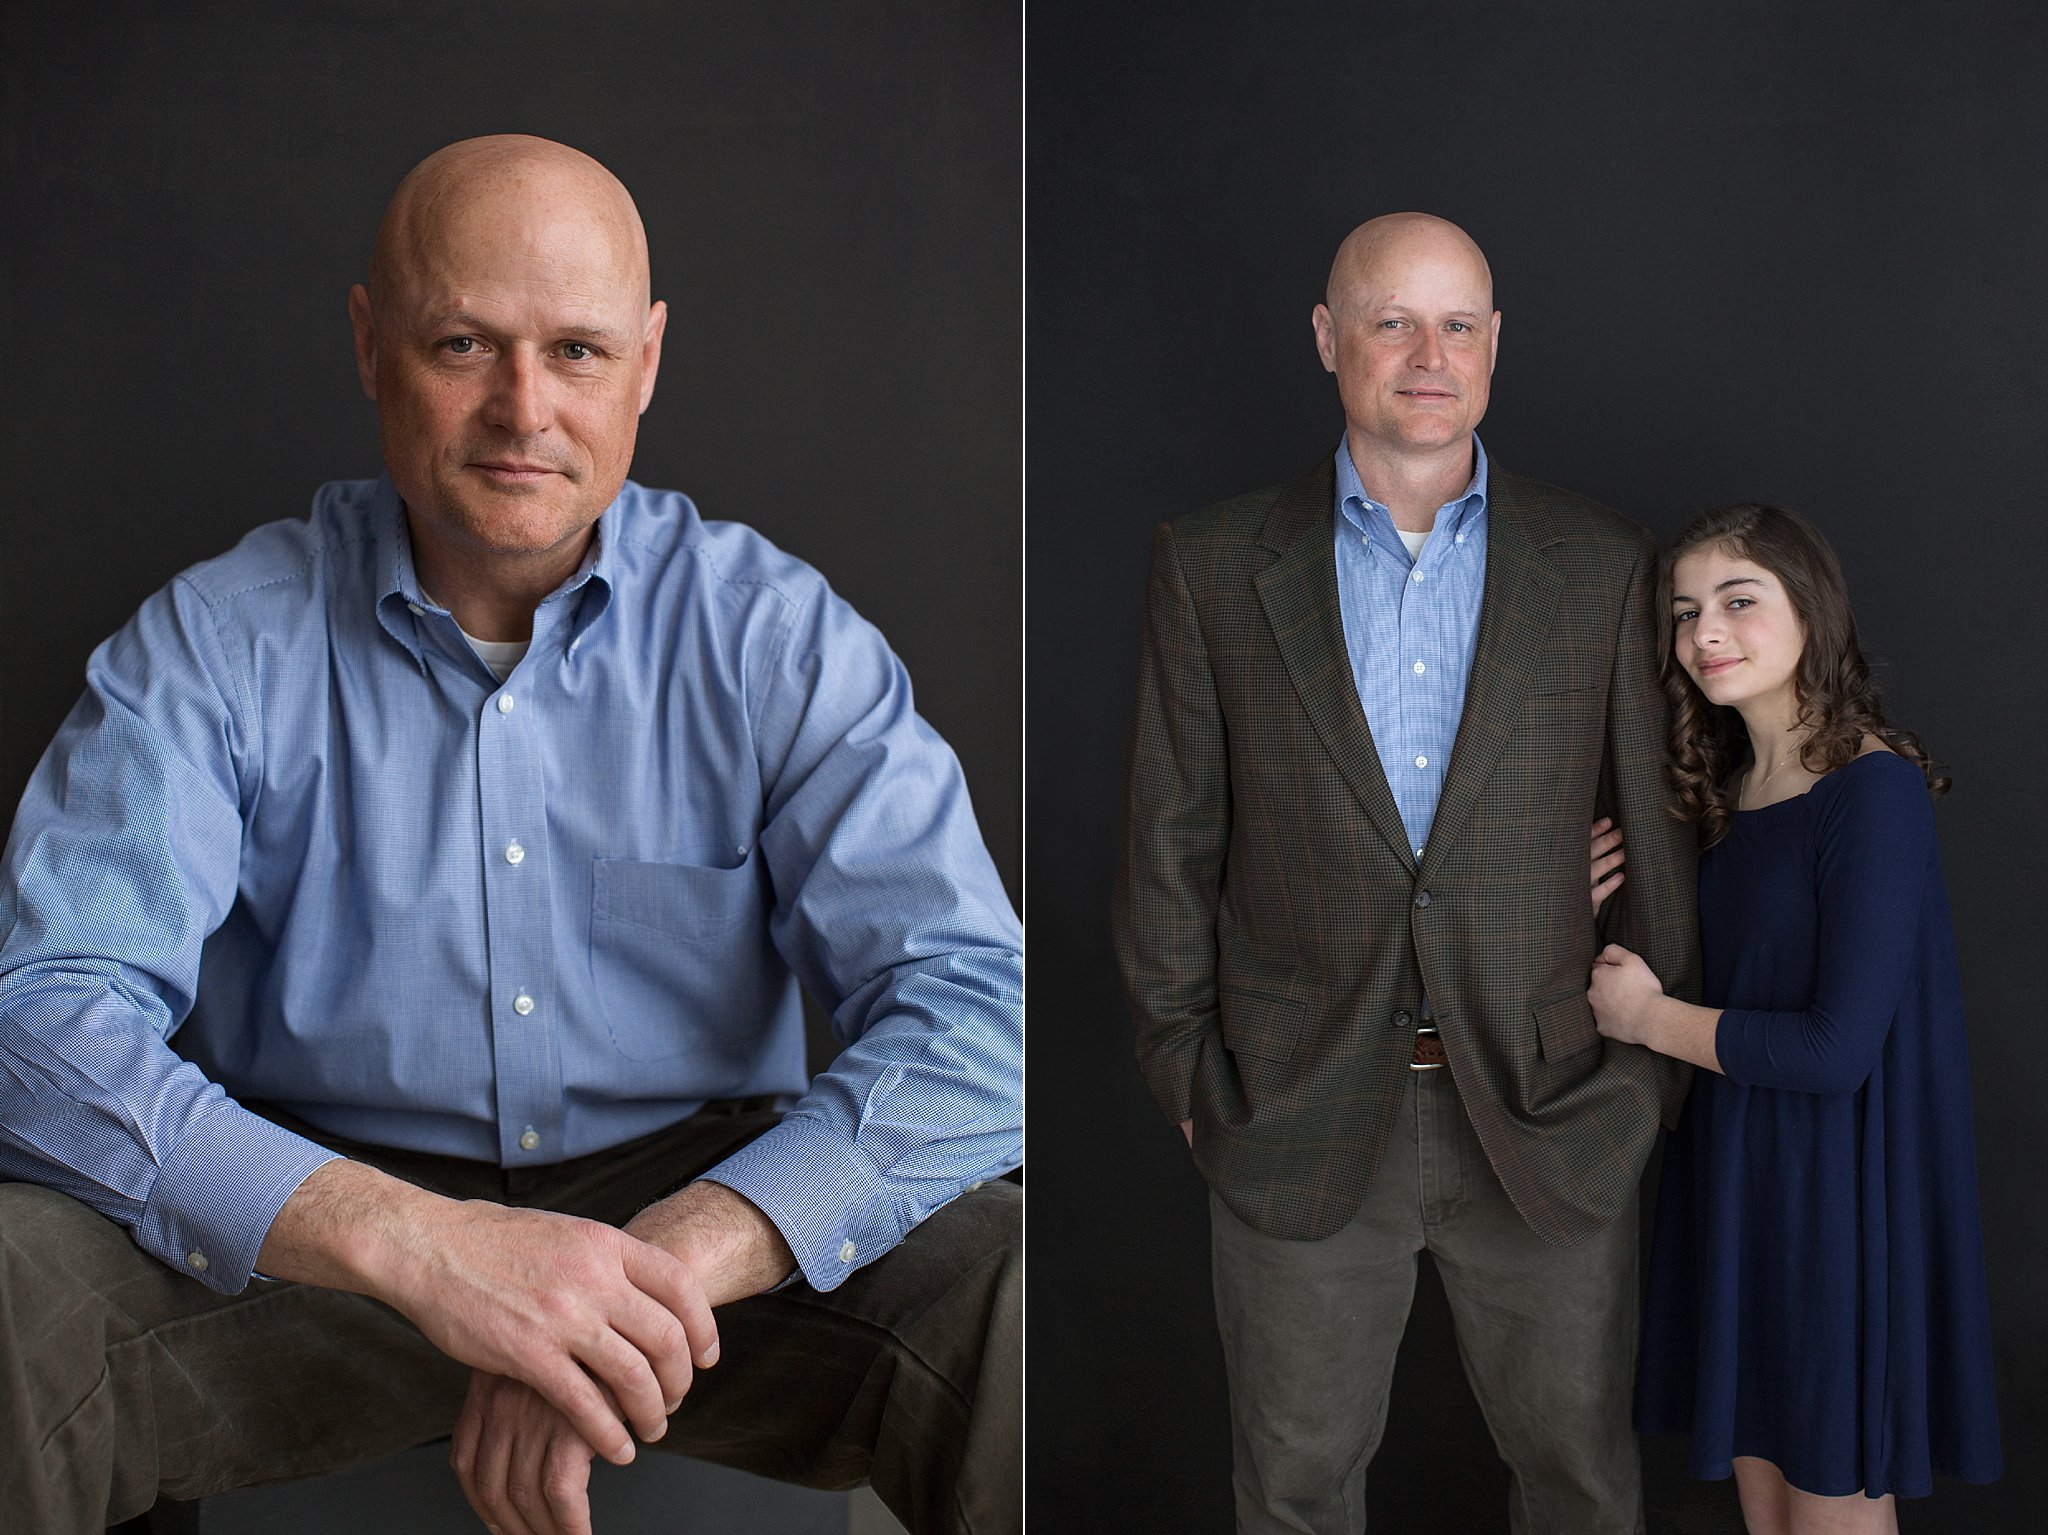 Father and Daughter Portraits_0012.jpg